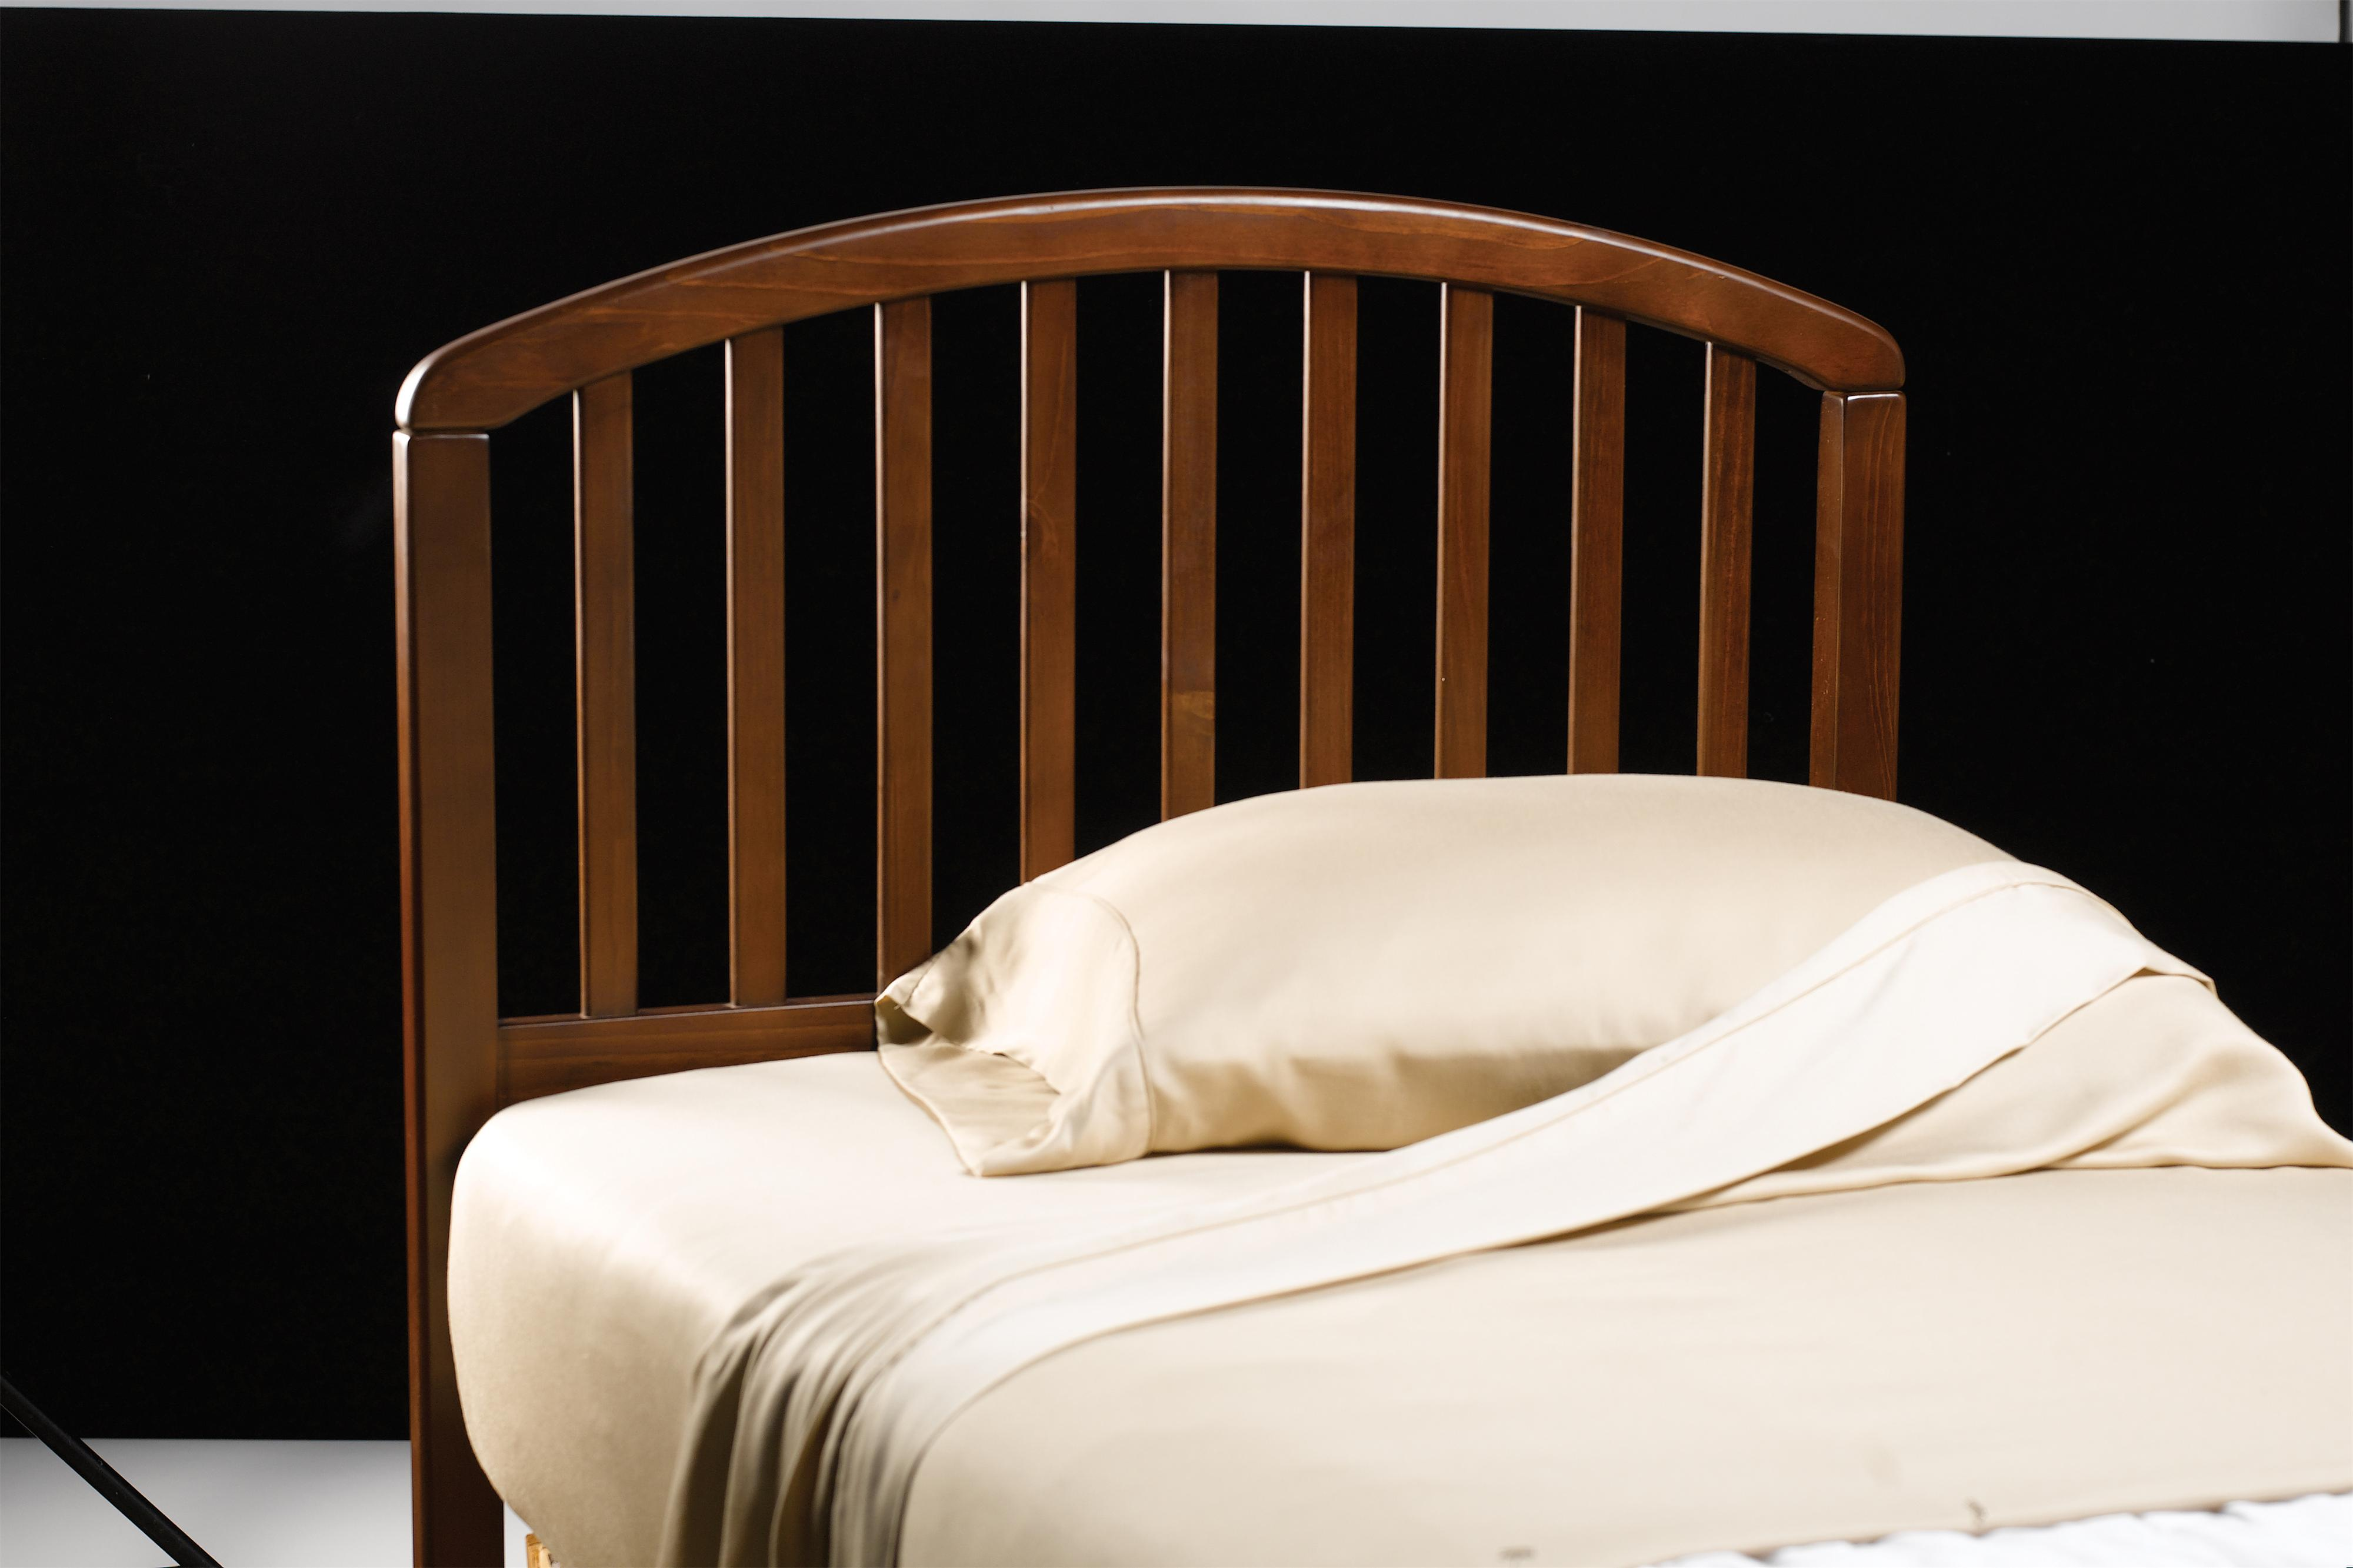 Hillsdale Wood Beds Full/ Queen Carolina Headboard with Rails - Item Number: 1593HFQR